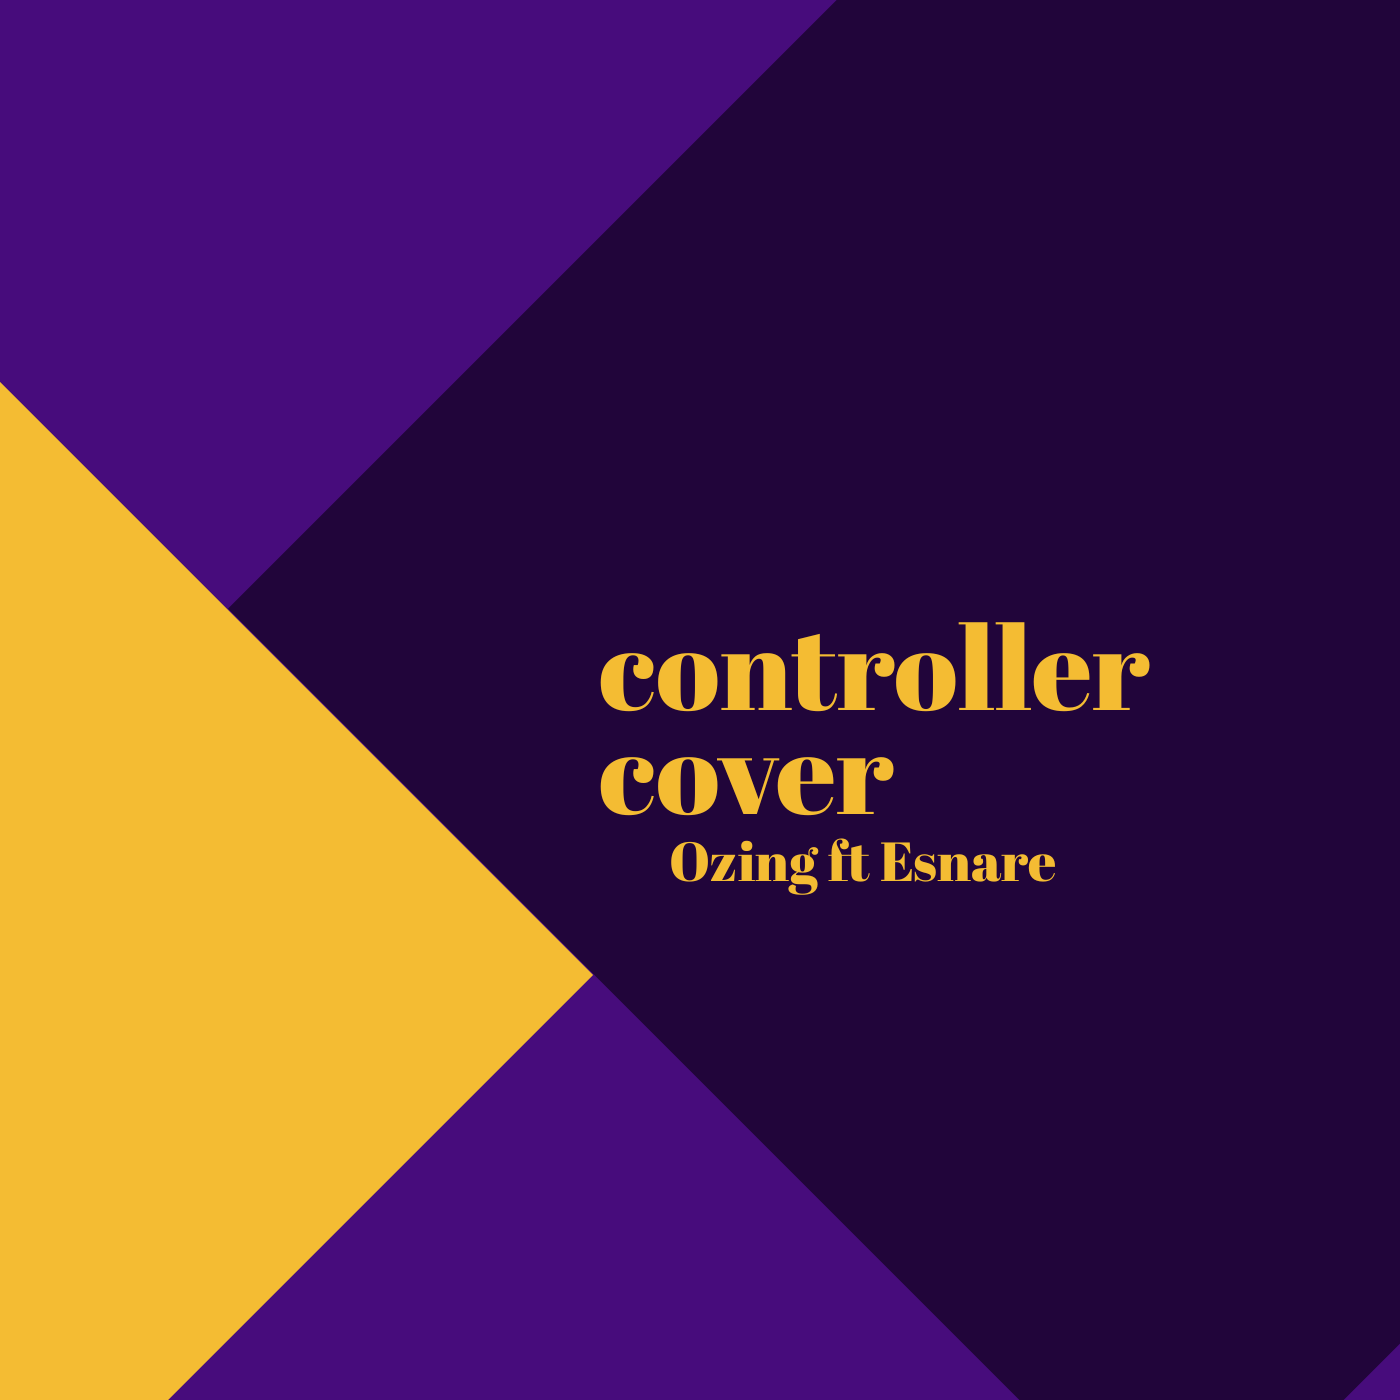 Controller cover: Ozing ft Esnare